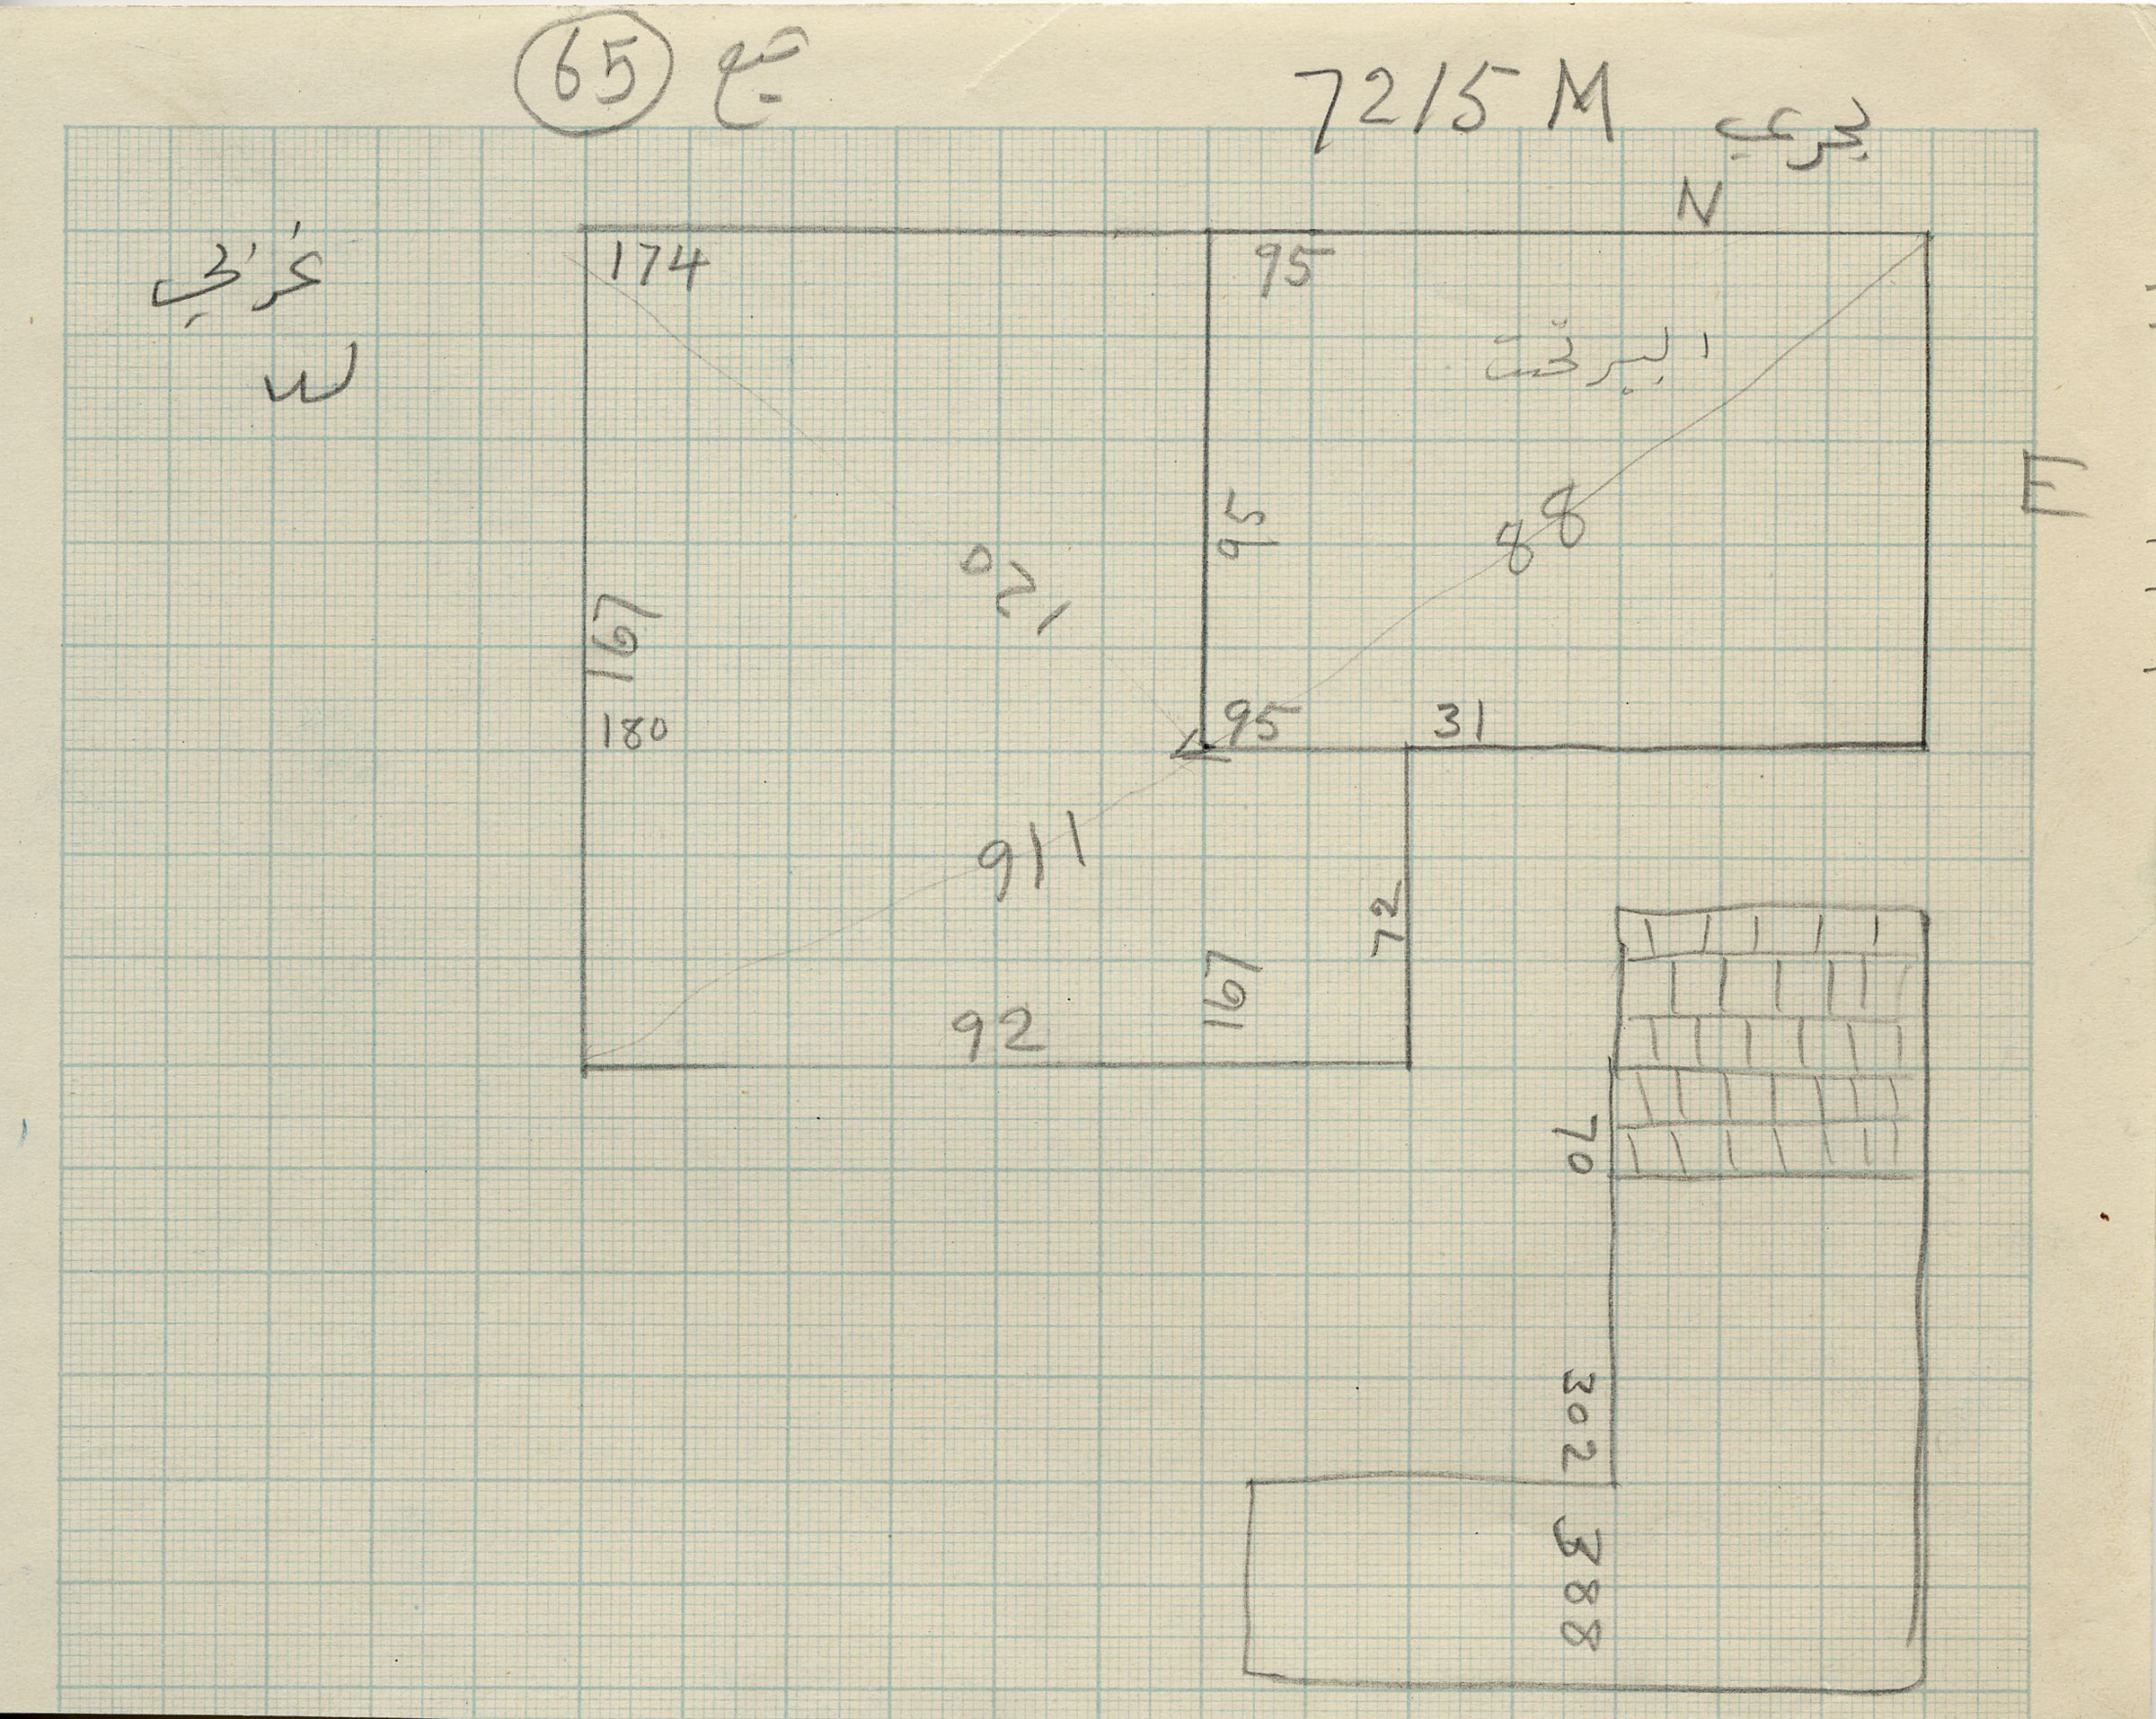 Maps and plans: G 7215, Shaft M